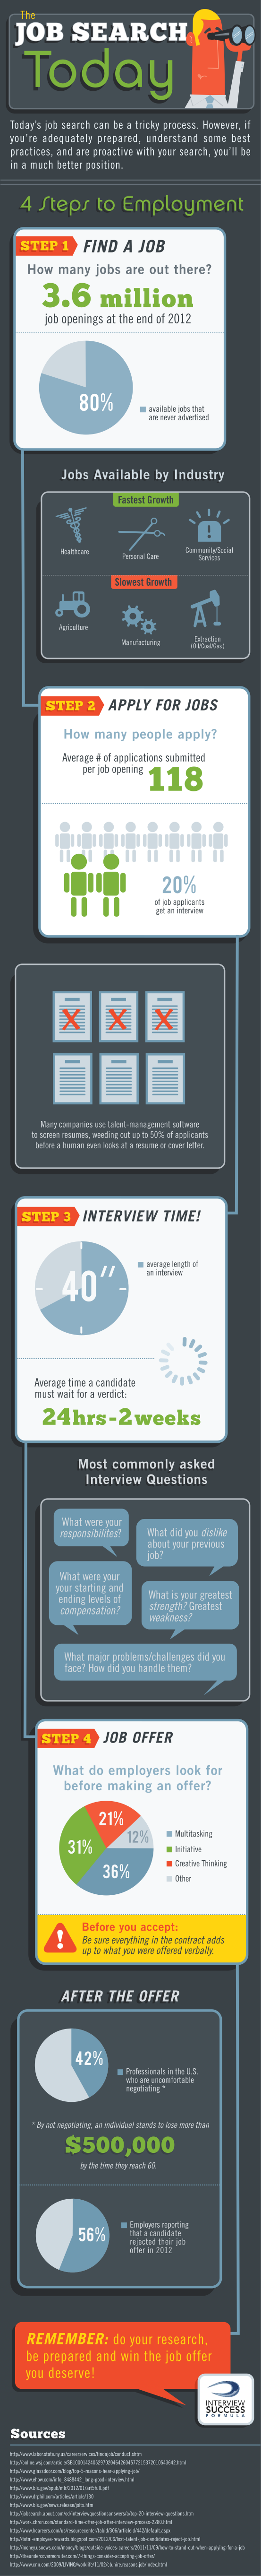 How To Succeed in the Job Search Today